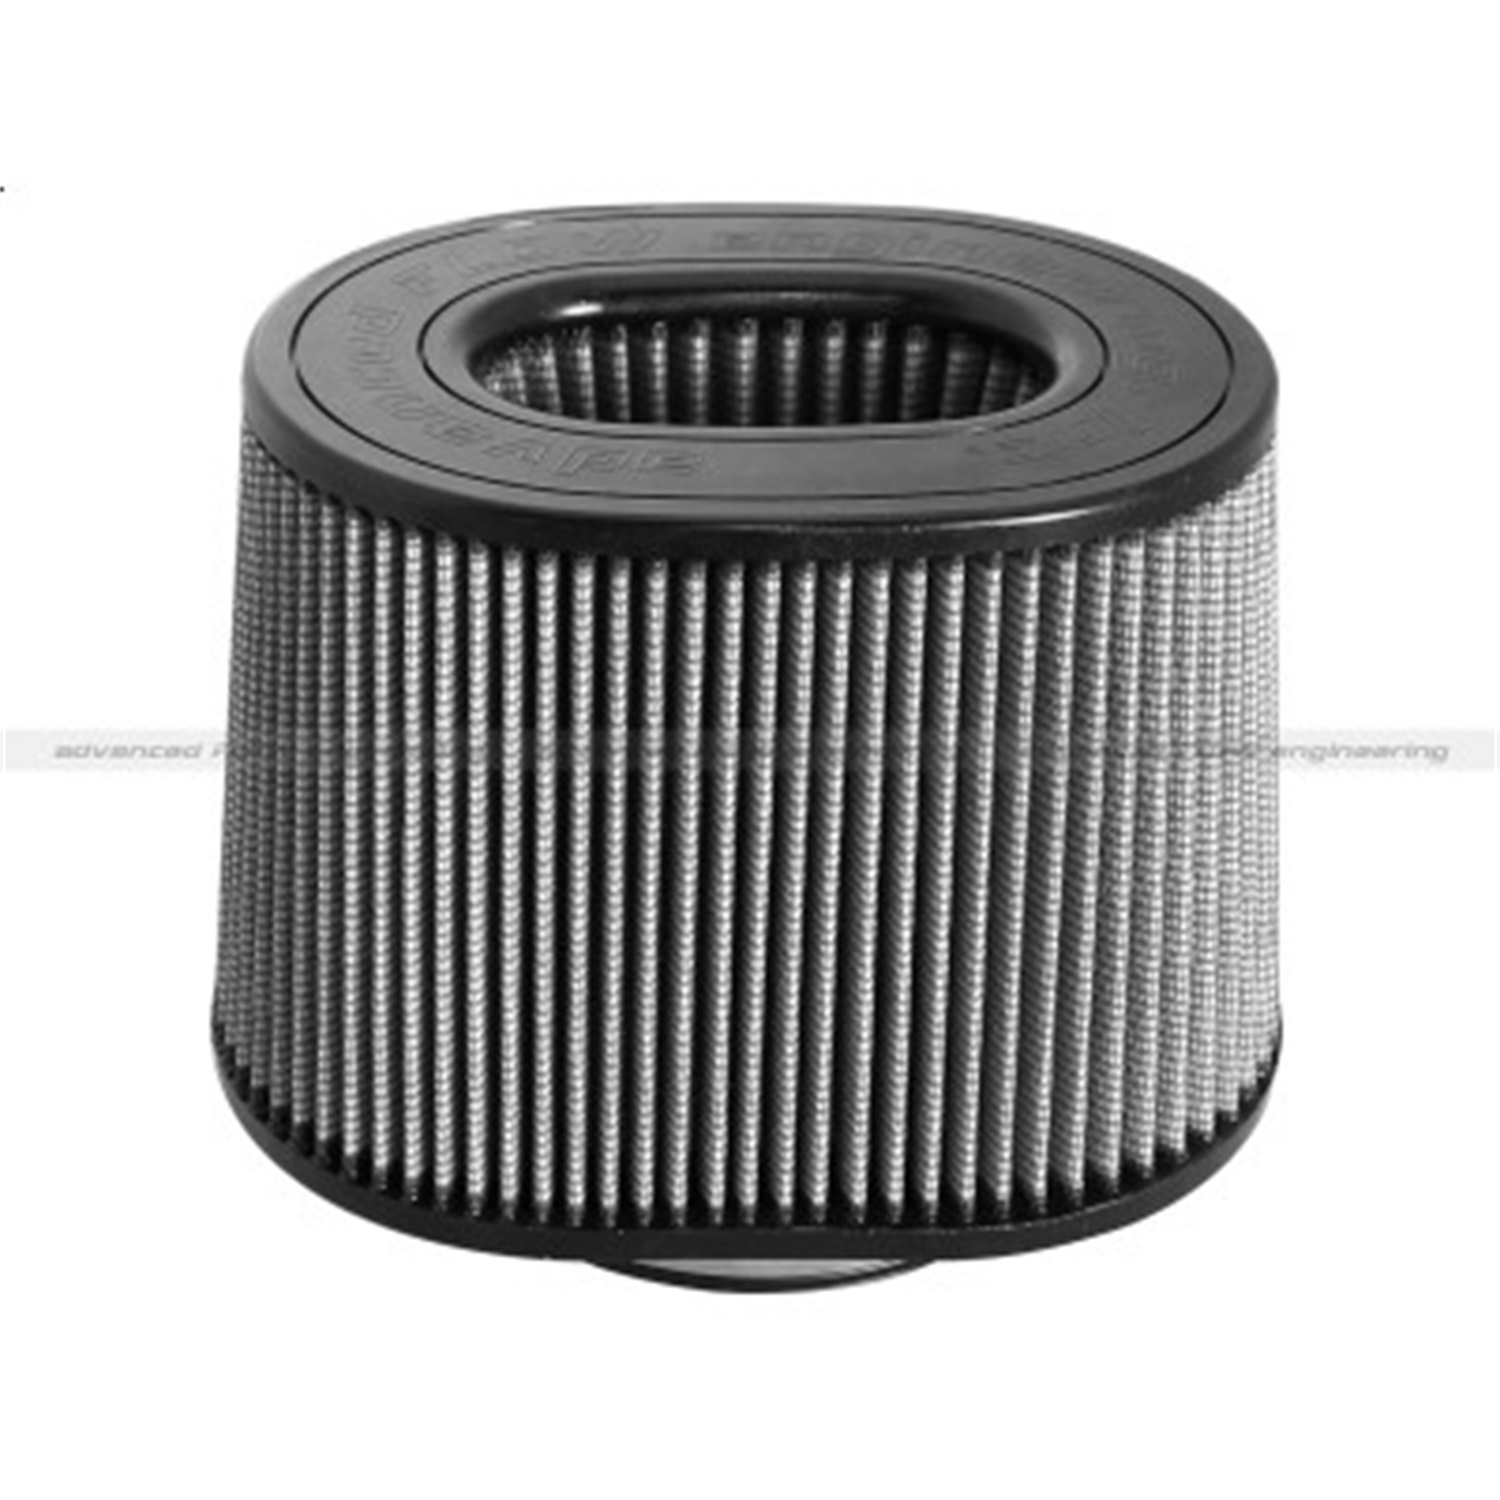 aFe Power 21-91080 MagnumFLOW Universal Clamp On PRO DRY S Air Filter 21-91080